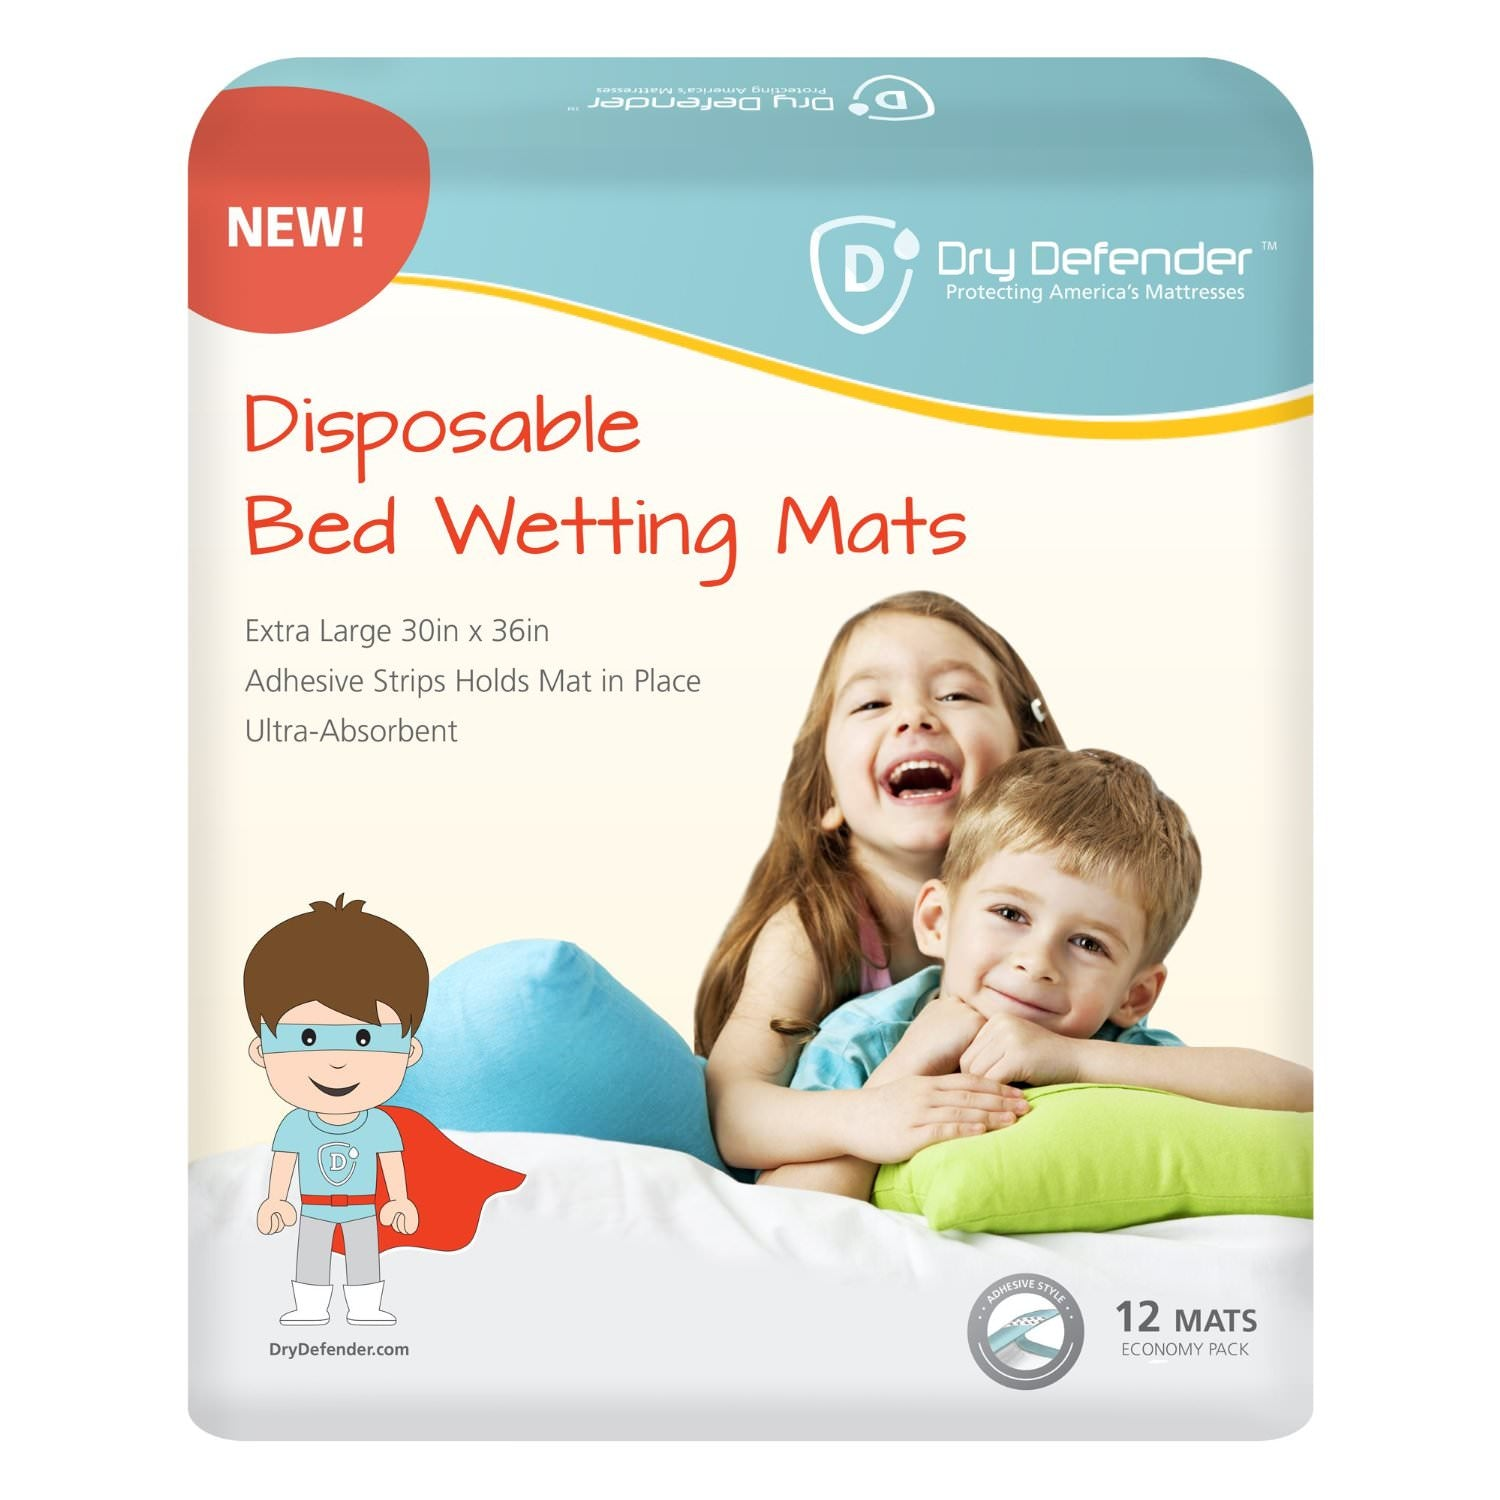 Bedding-Dry Defender Disposable Bedwetting Mats - Pack of 12 - Extra Large